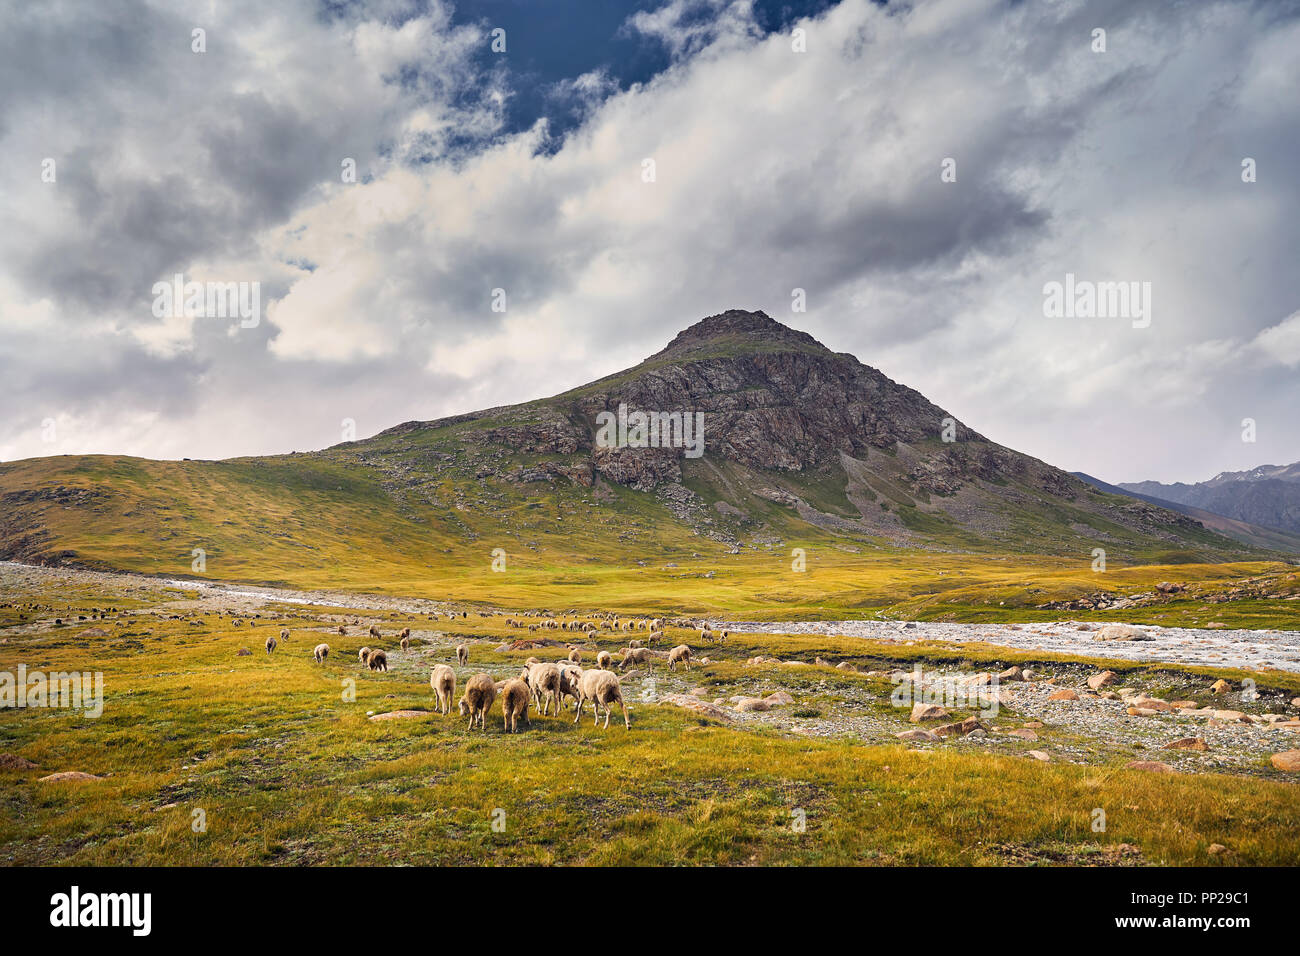 Sheep in near the river in Terskey Alatau mountains of Kyrgyzstan, Central Asia - Stock Image